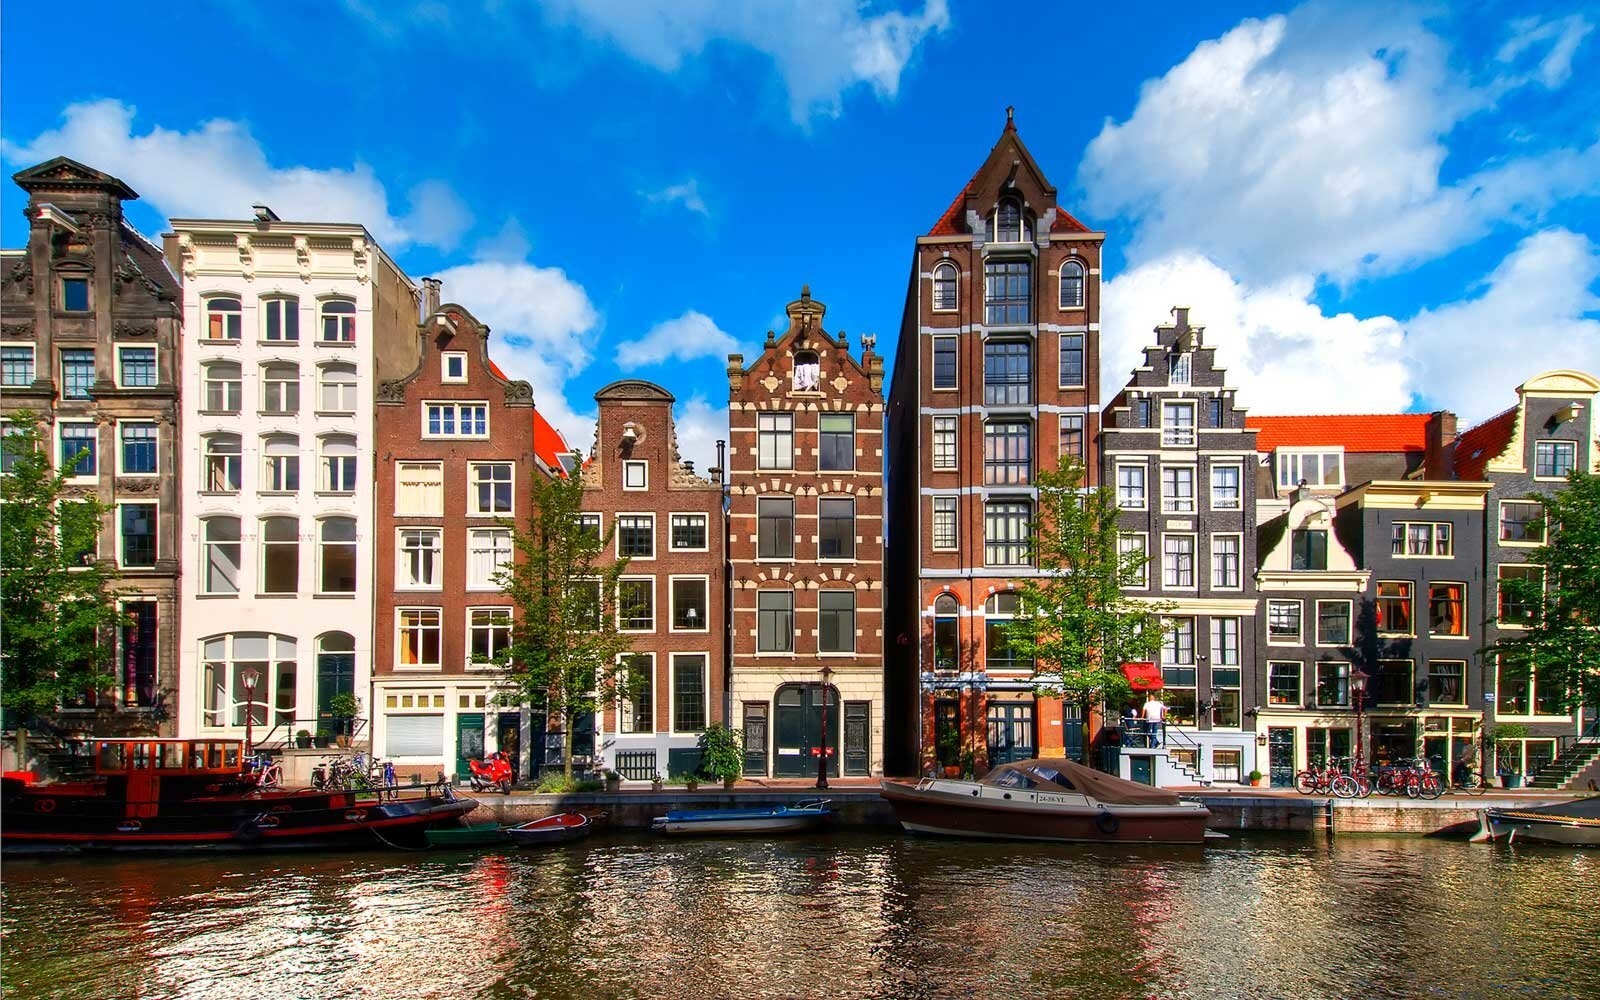 Amsterdam-inspired Home Décor Ideas | Travel + Leisure